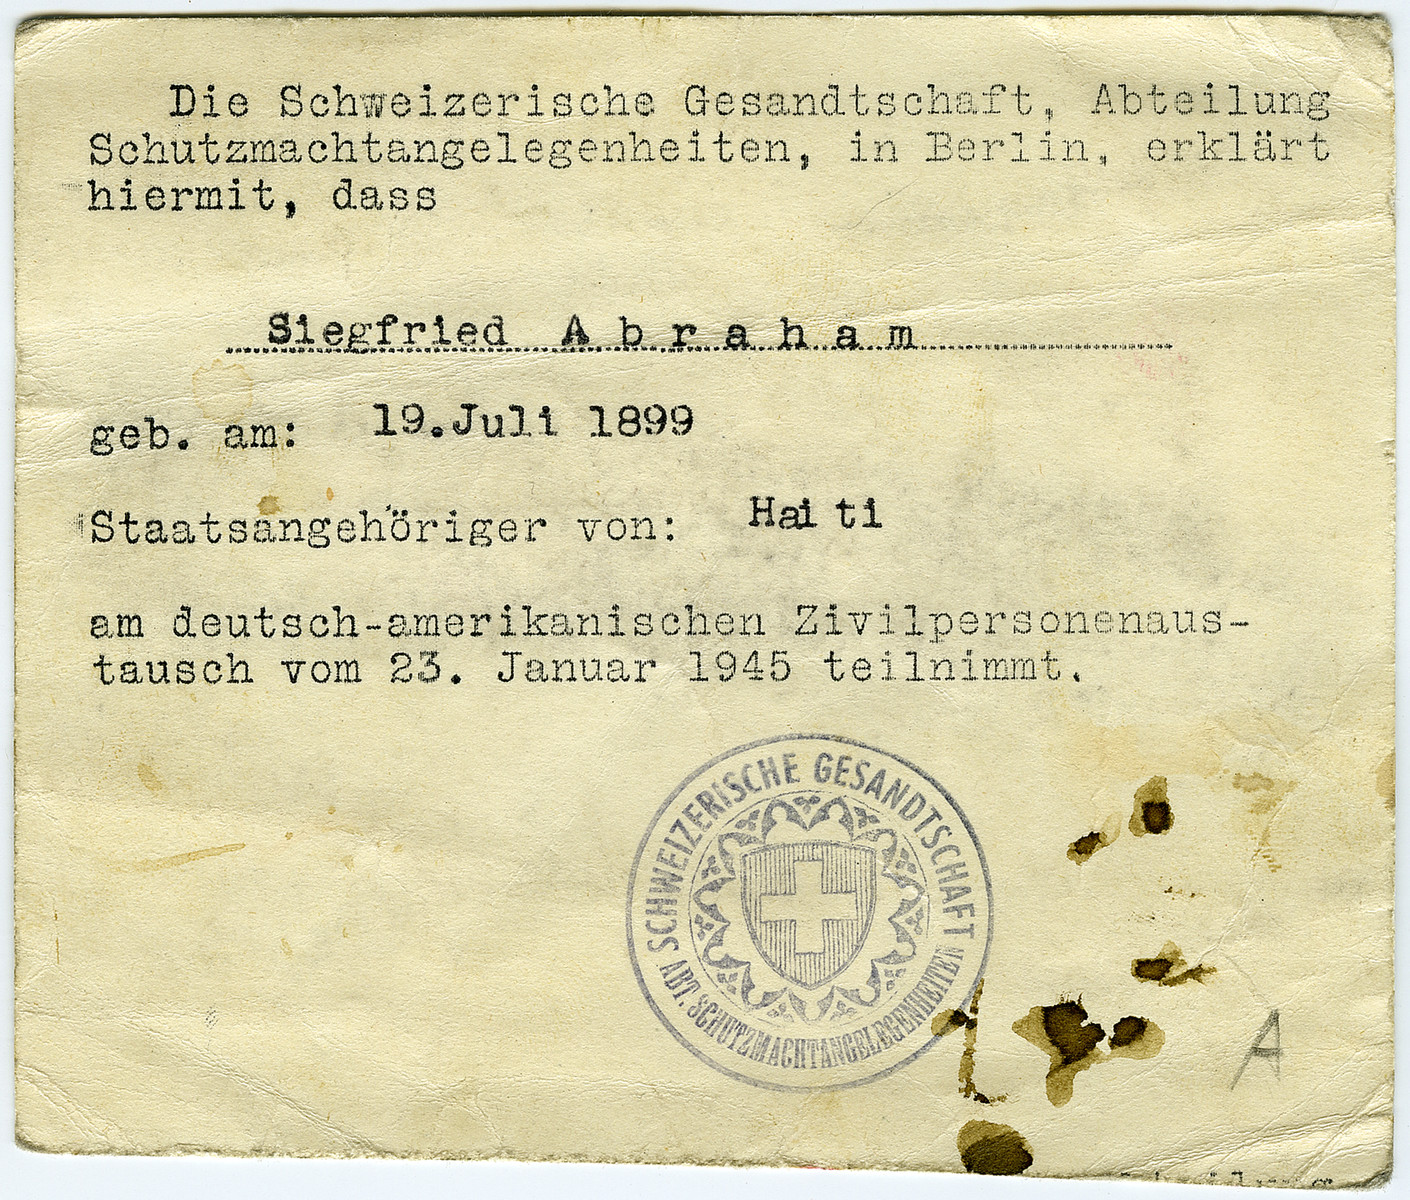 Identification paper issued to Siegfried Abraham in Switzerland following his release from Bergen-Belsen in a prisoner release stating that he had Haitian citizenship.